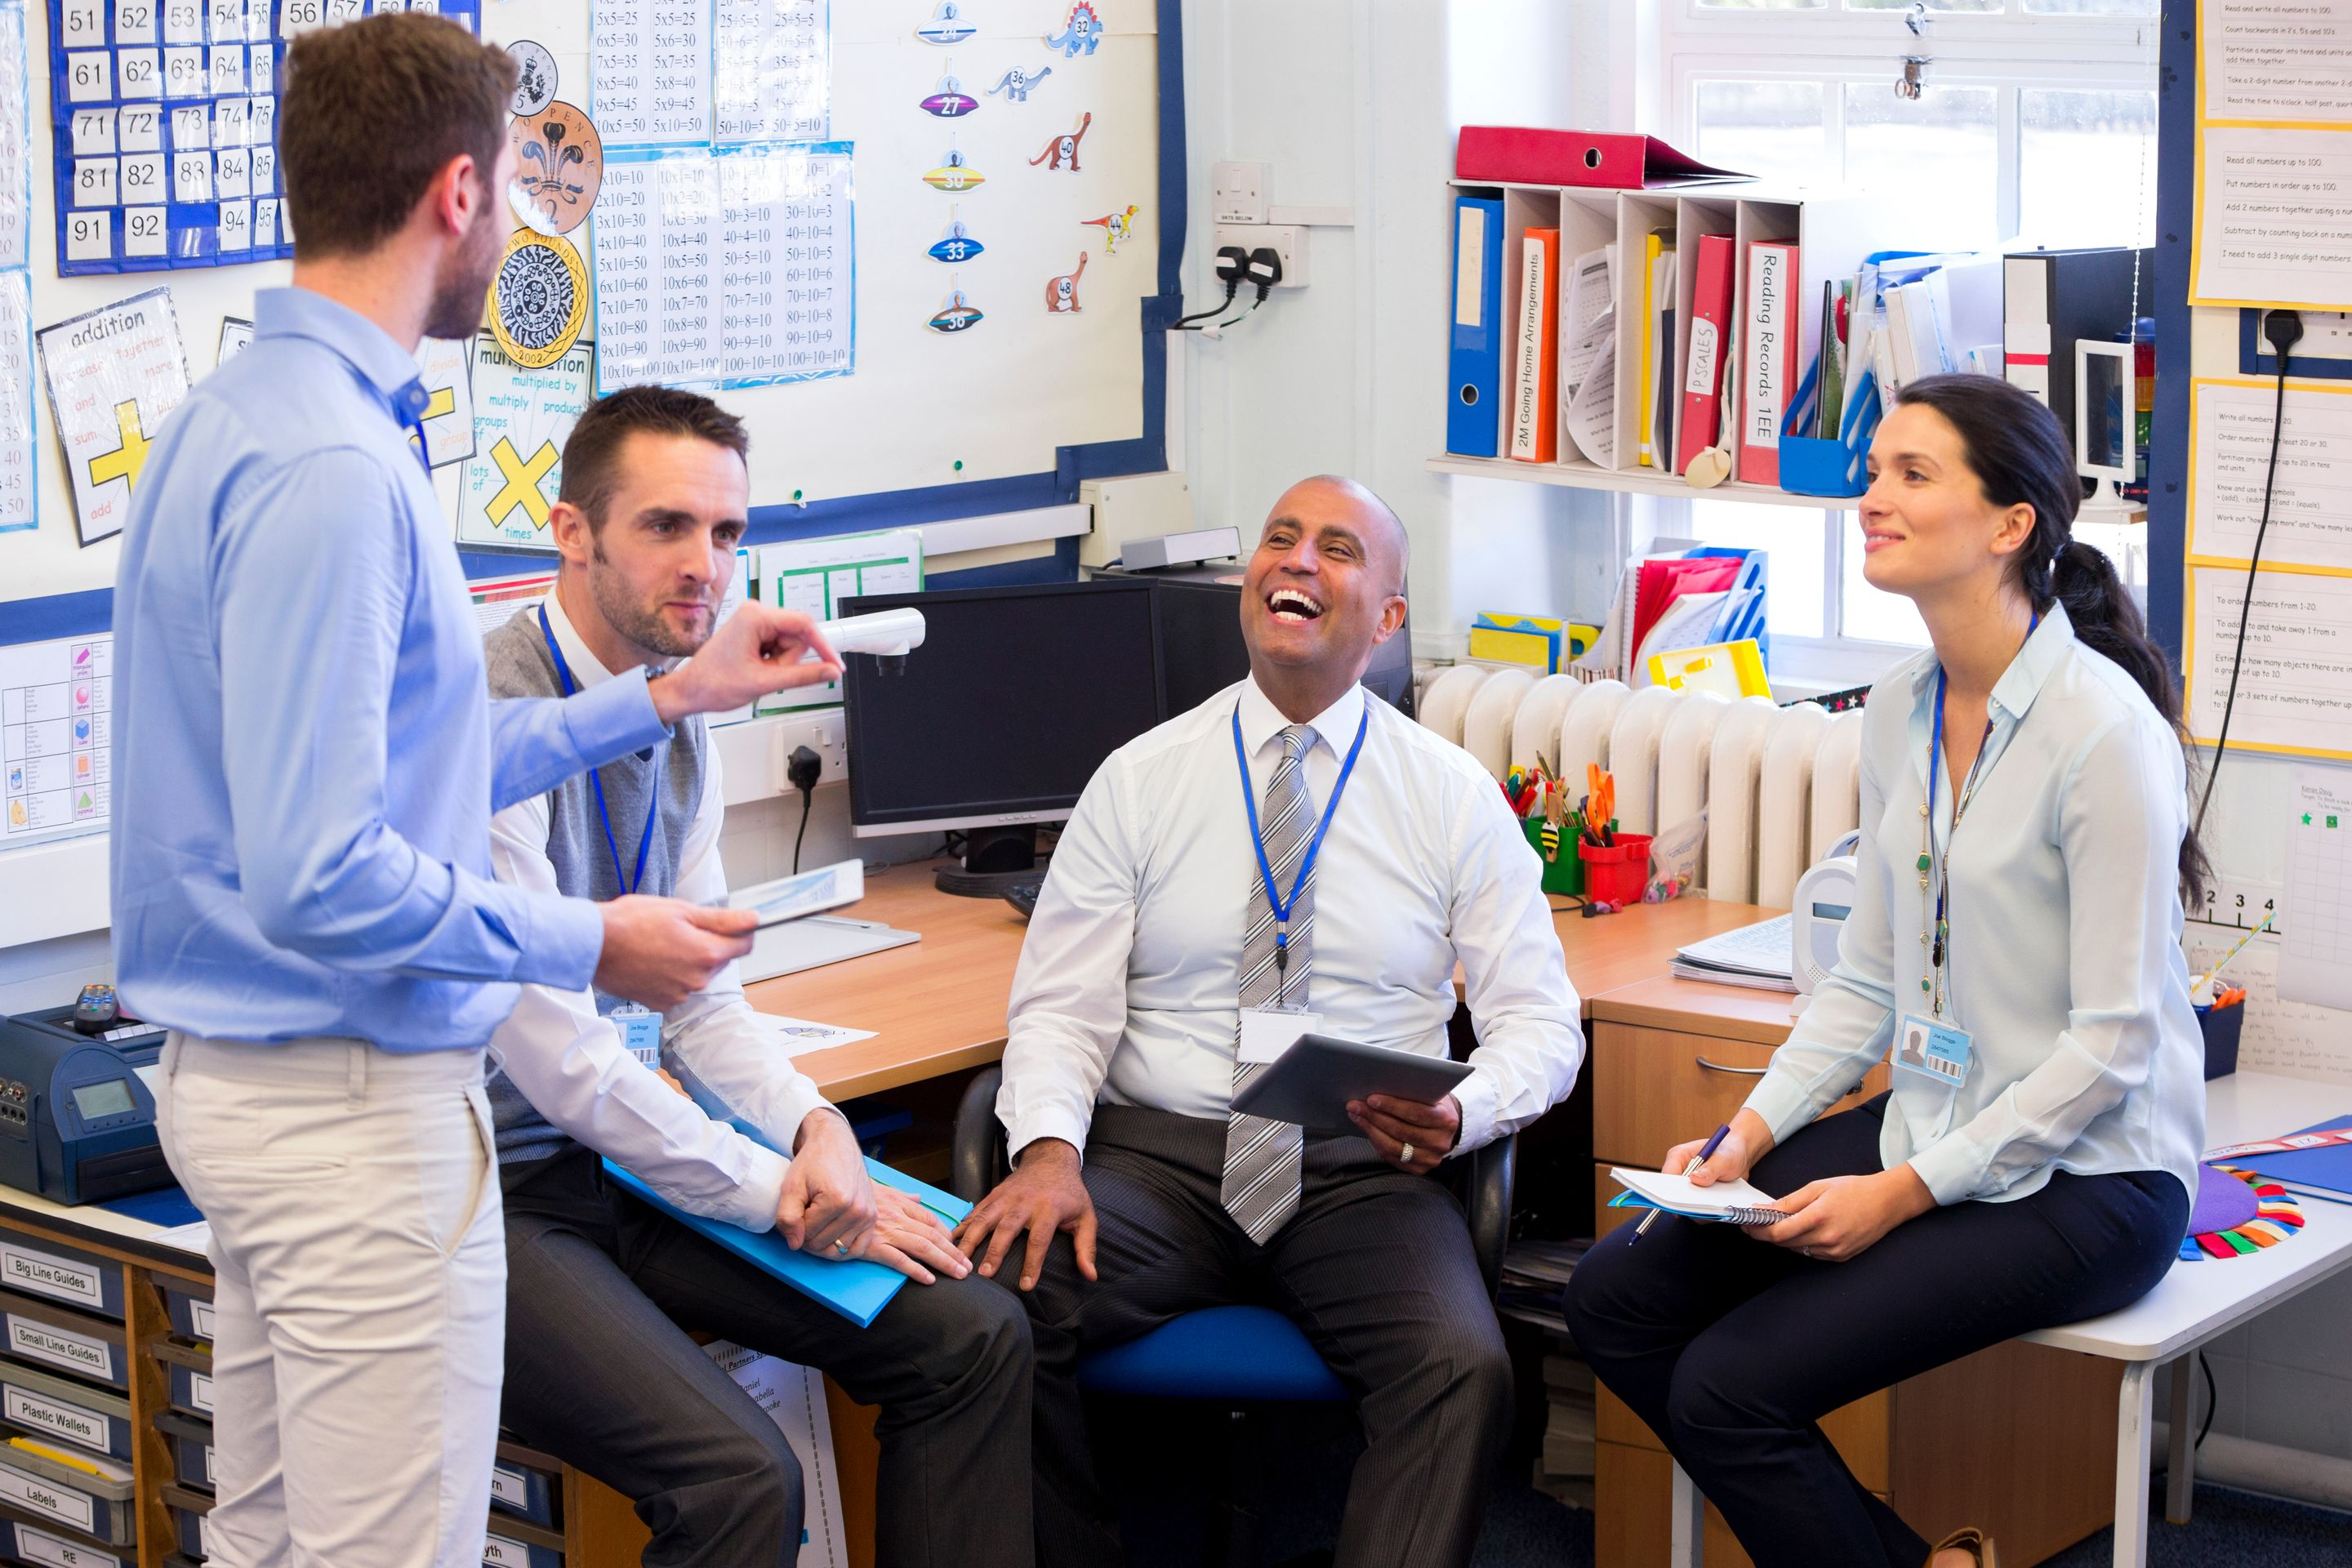 School teachers gather in a small school office for a chat.